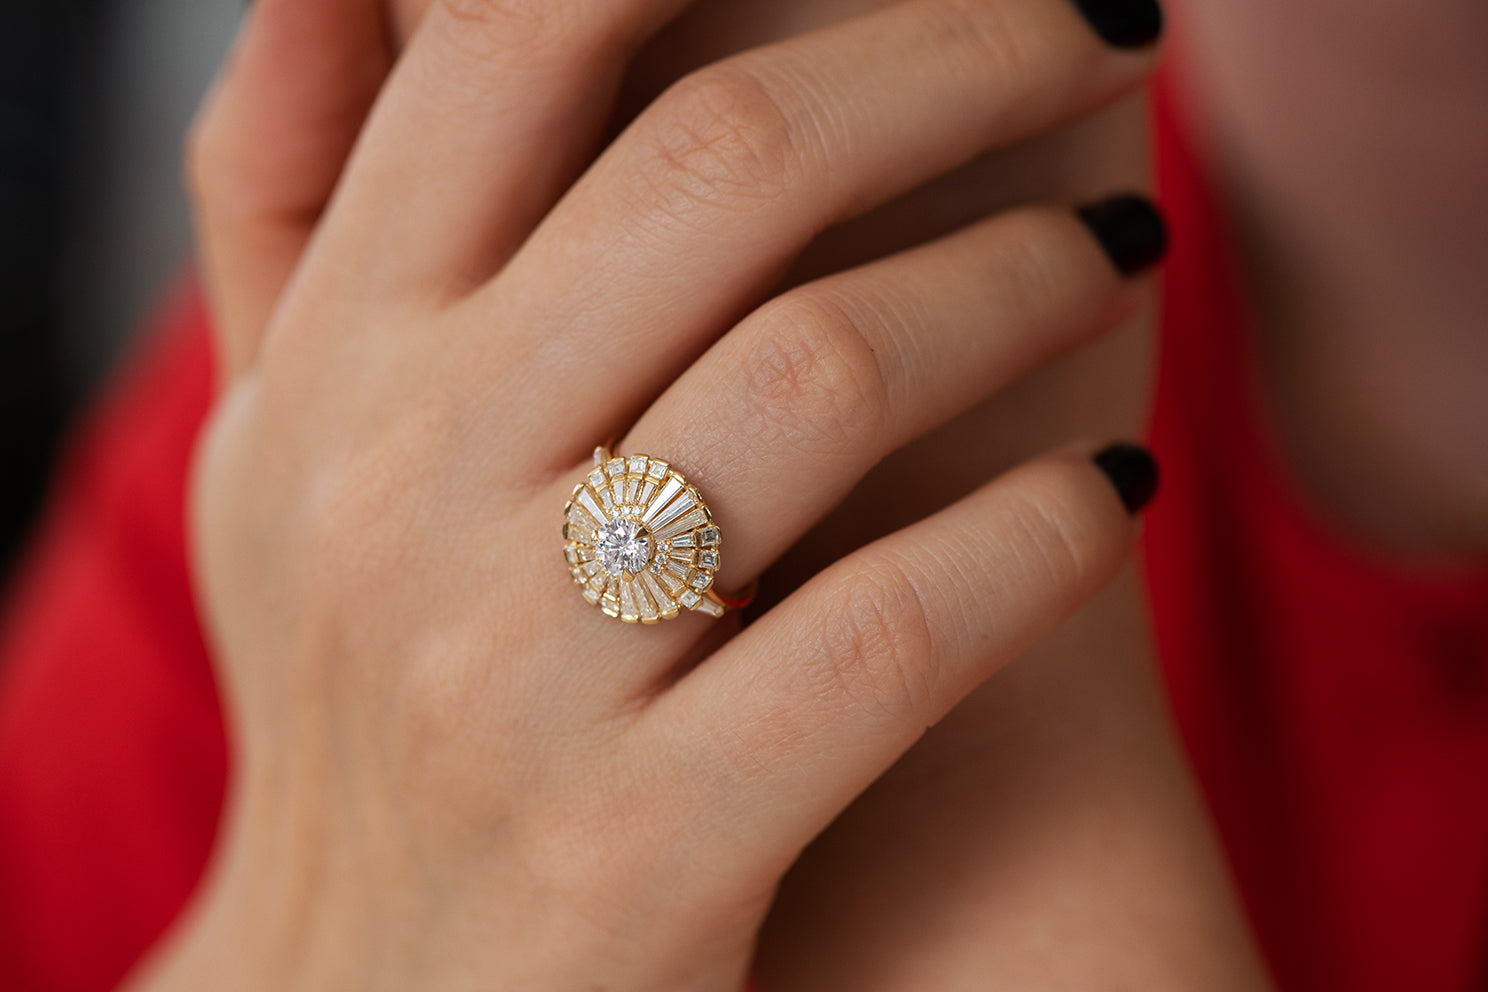 Diamond Snowflake Ring with Tapered Baguette Diamonds on Hand Top View